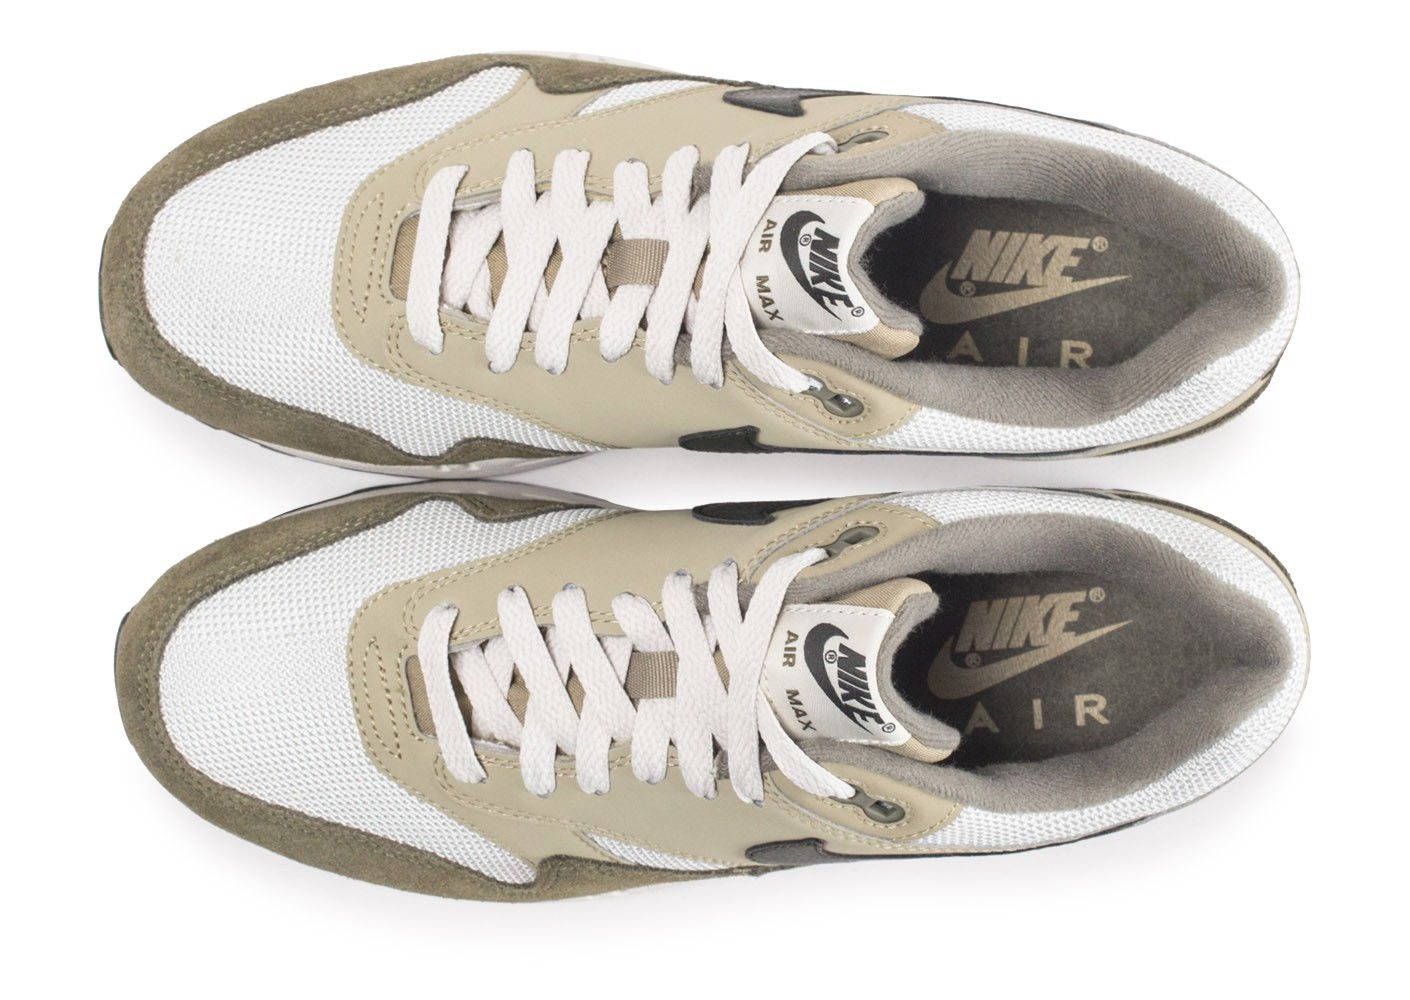 Medium Homme 1 Air Max Baskets Olive Chaussures Chausport Nike qw4ftSCW